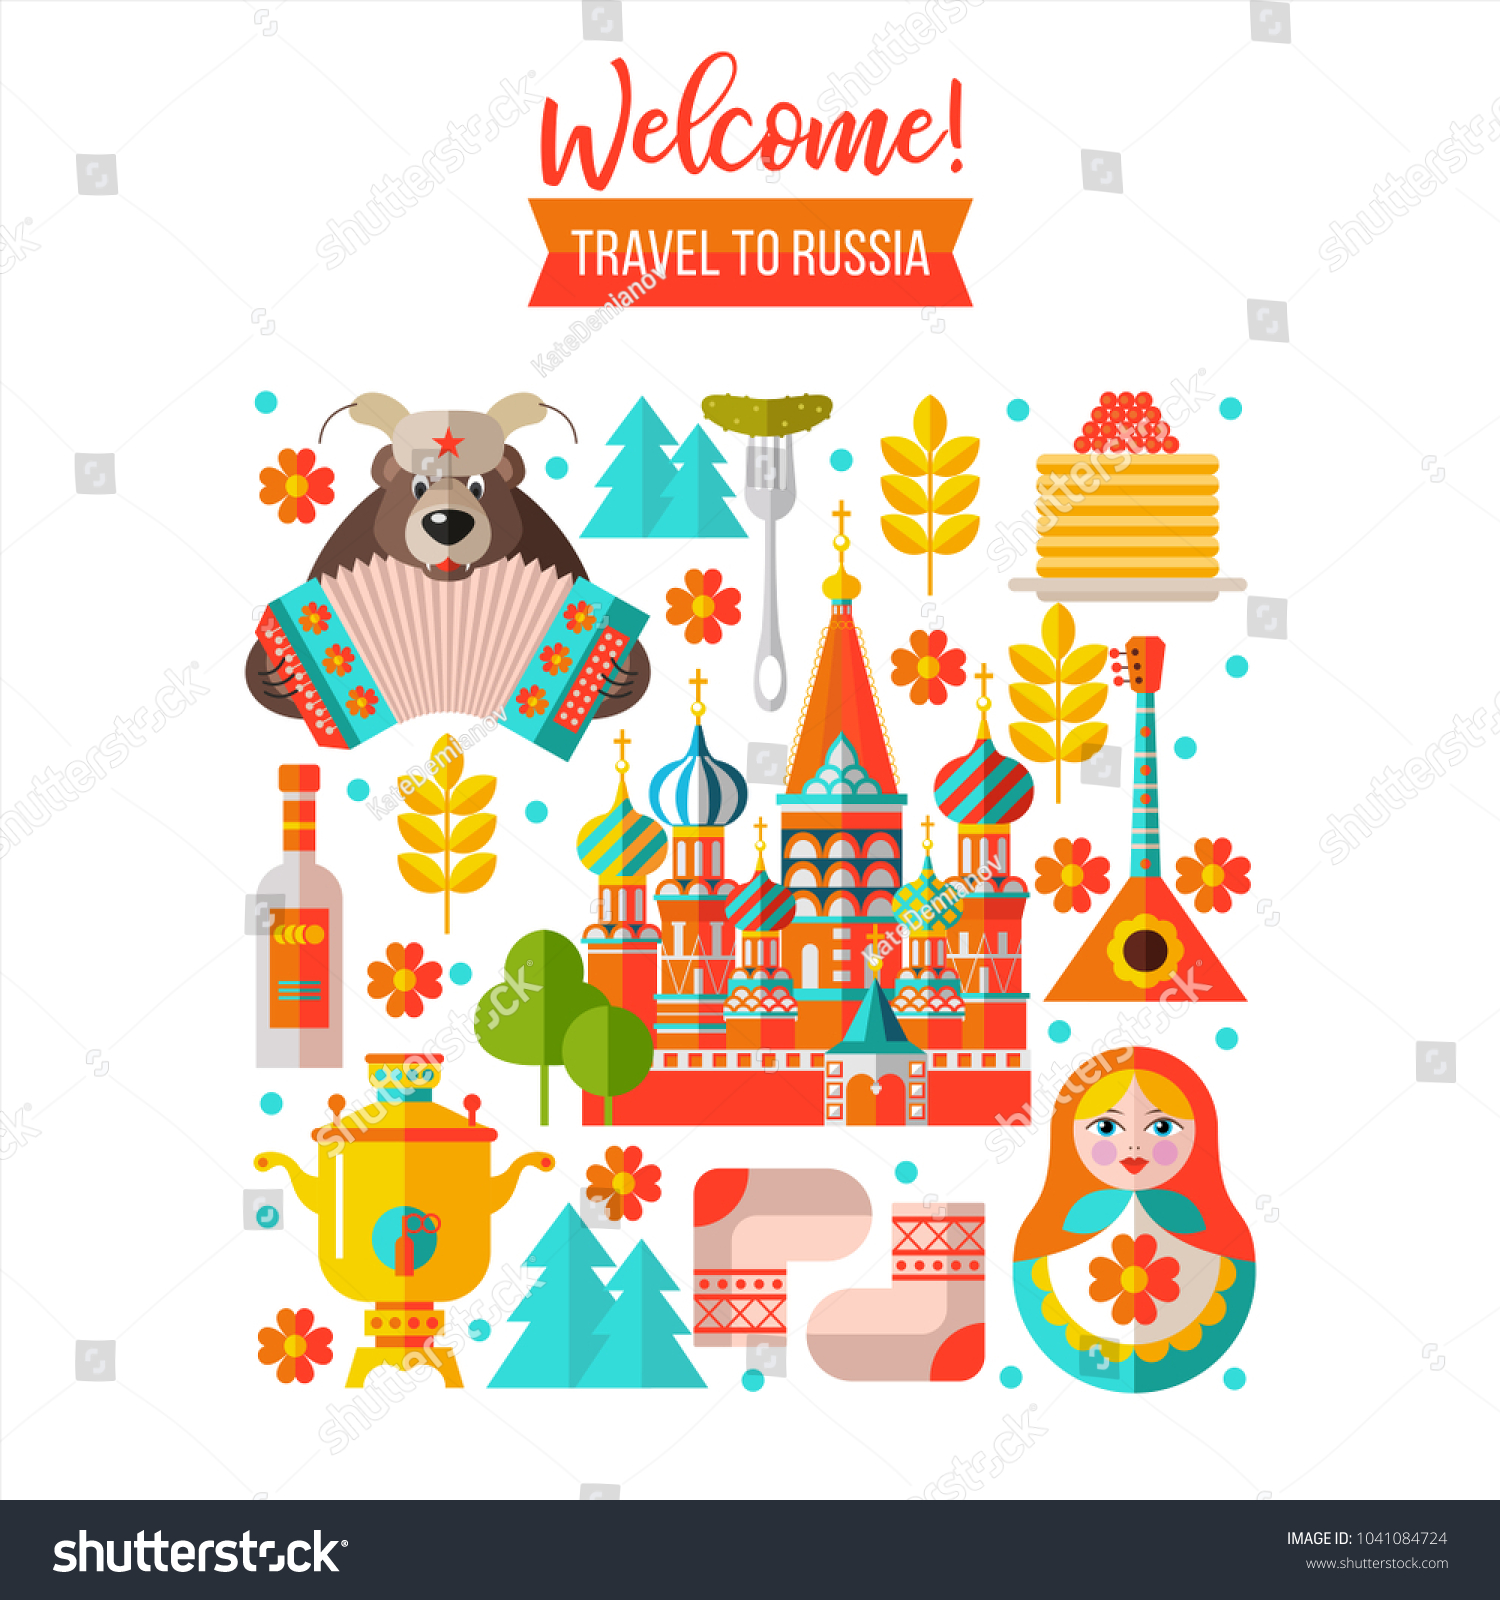 Welcome Russia Travel Russia Set Clipart Stock Vector (Royalty Free.